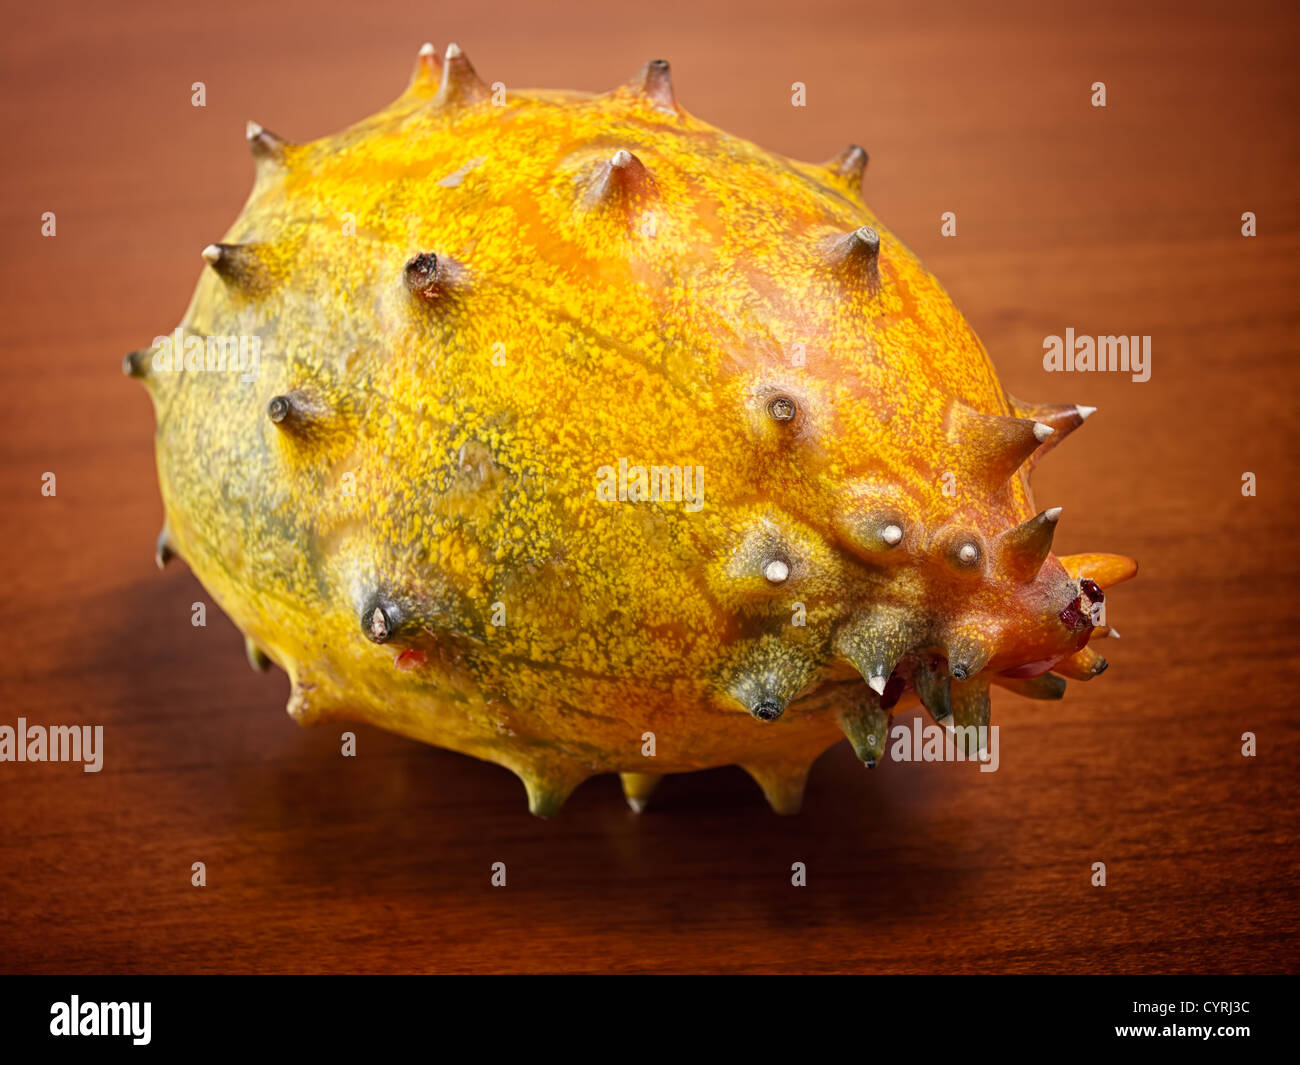 Kiwano is a fruit also known as African horned melon or cucumber. - Stock Image